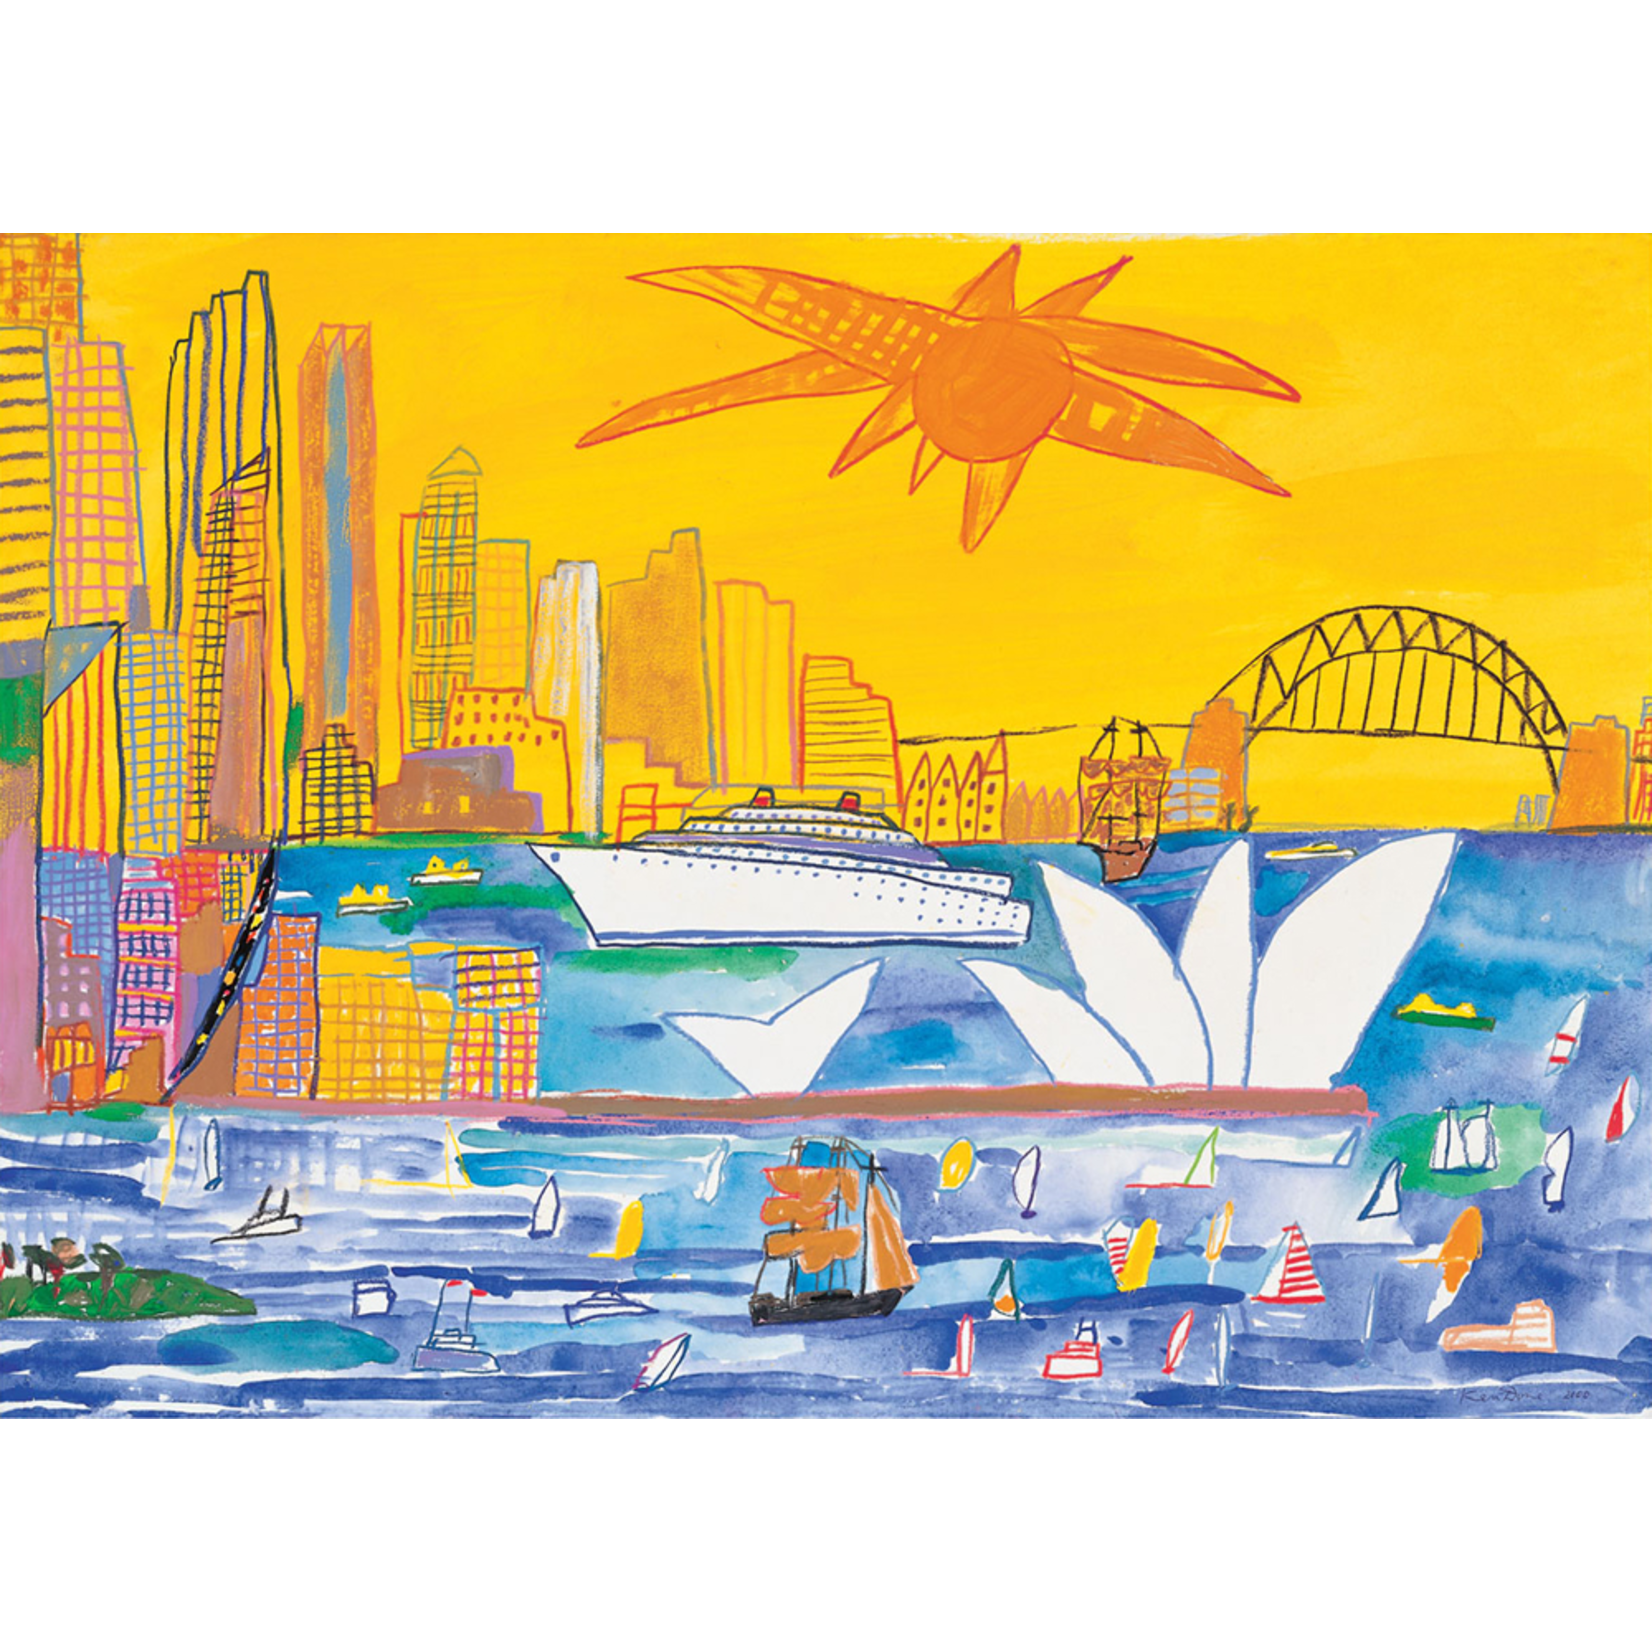 Limited Edition Prints Sydney by day, 2000